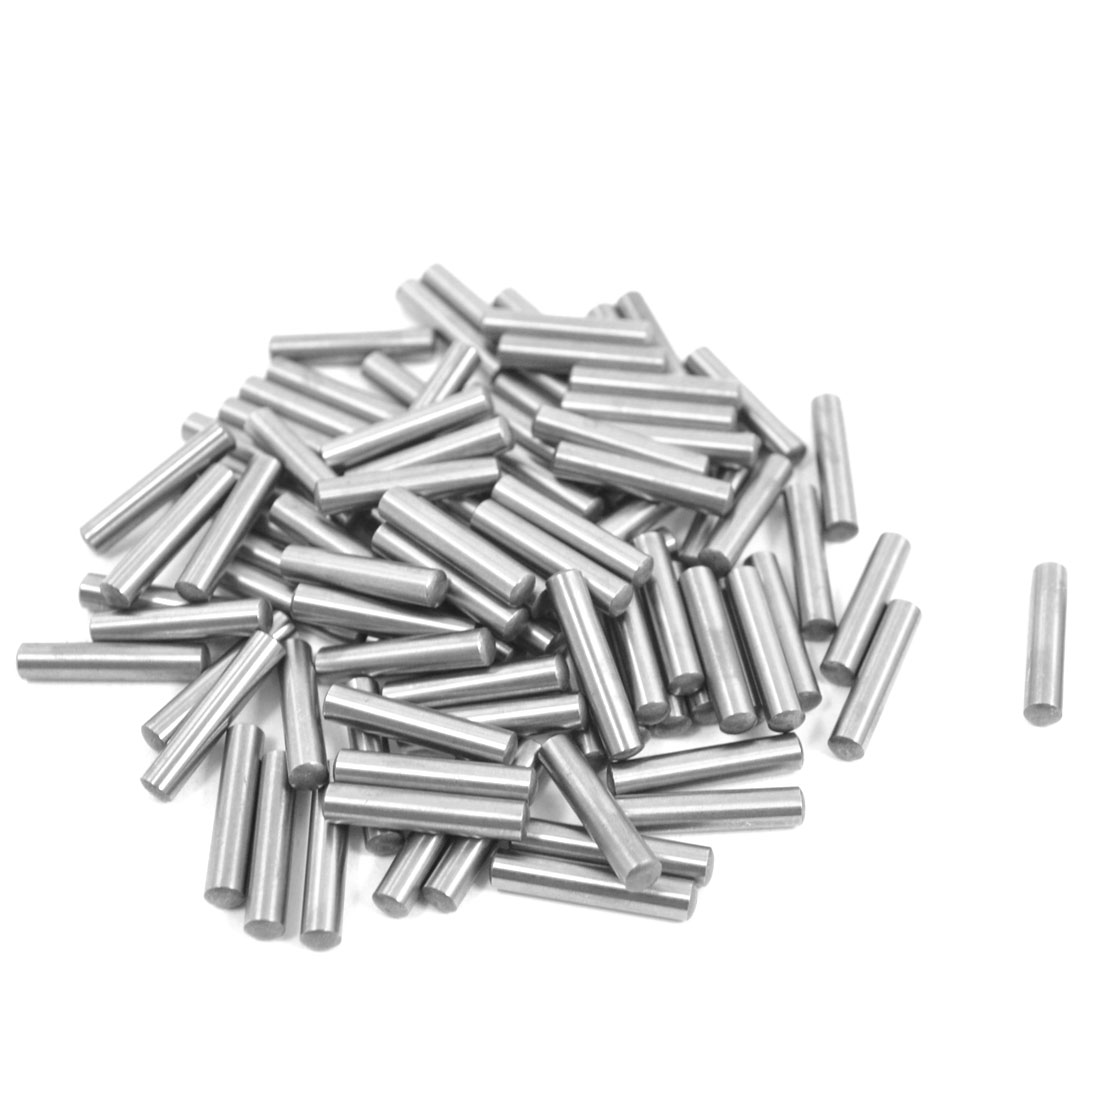 100 Pcs Stainless Steel 3.1mm x 15.8mm Parallel Dowel Pins Fasten Elements Silver Tone